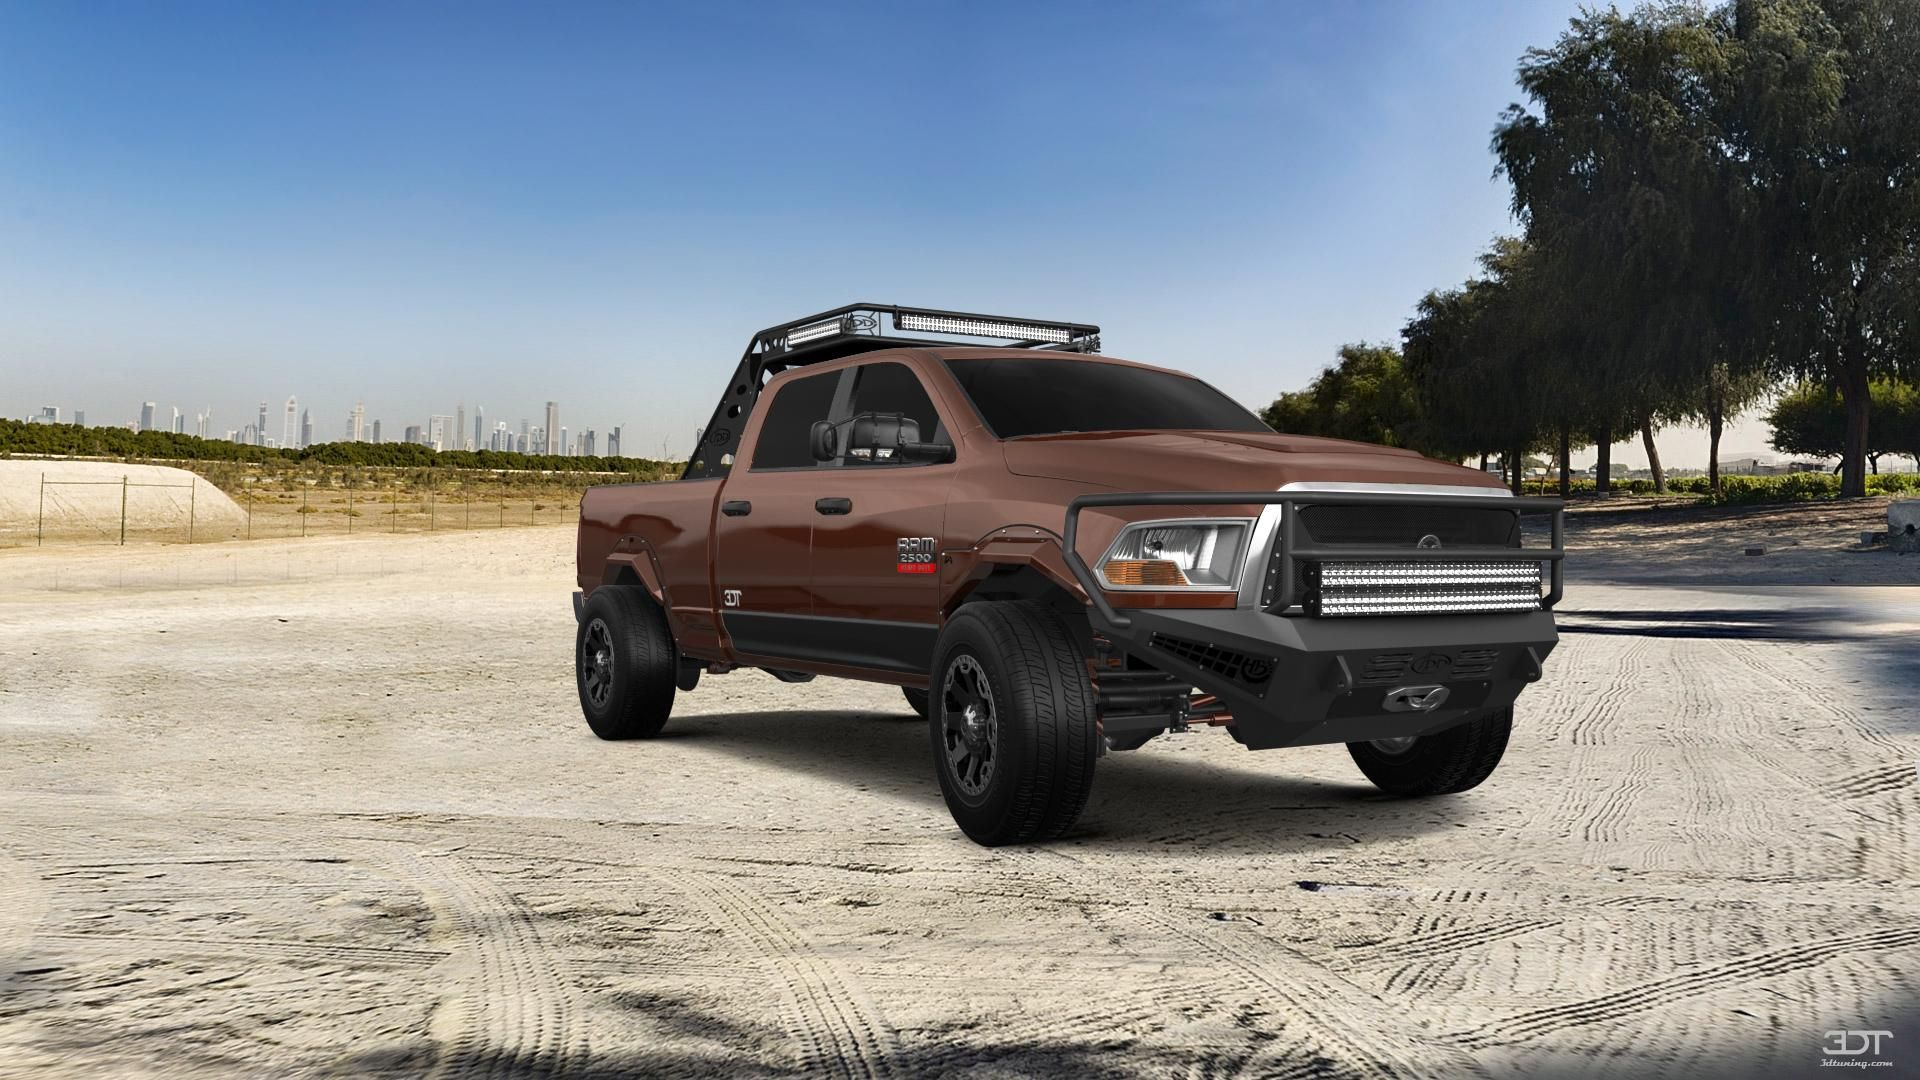 Checkout My Tuning Dodge Ram2500 2014 At 3dtuning 3dtuning Tuning Dodge Ram 2500 Dodge Ram 2500